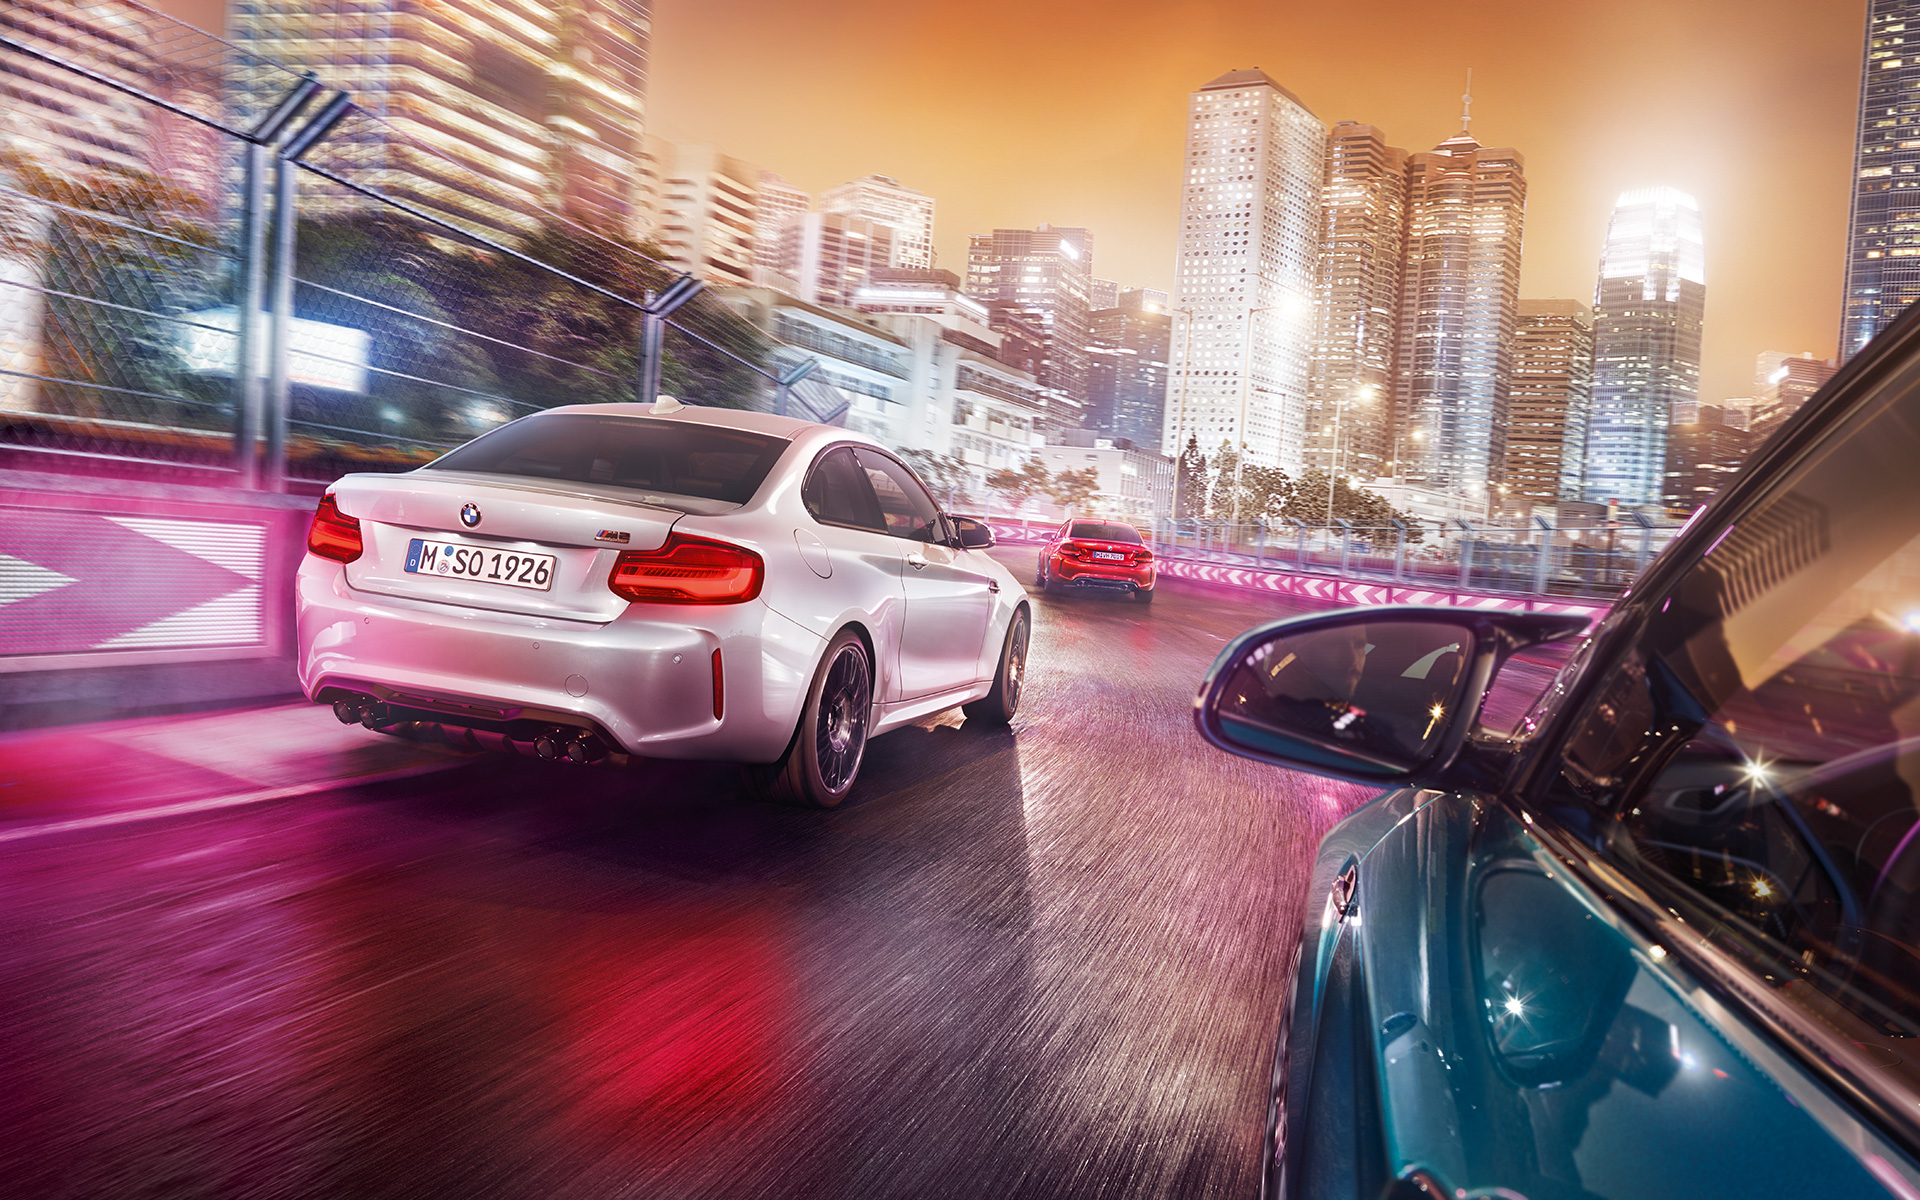 bmw-m-series-m2-exterior-intro-03-large.jpg.asset.1522767107468